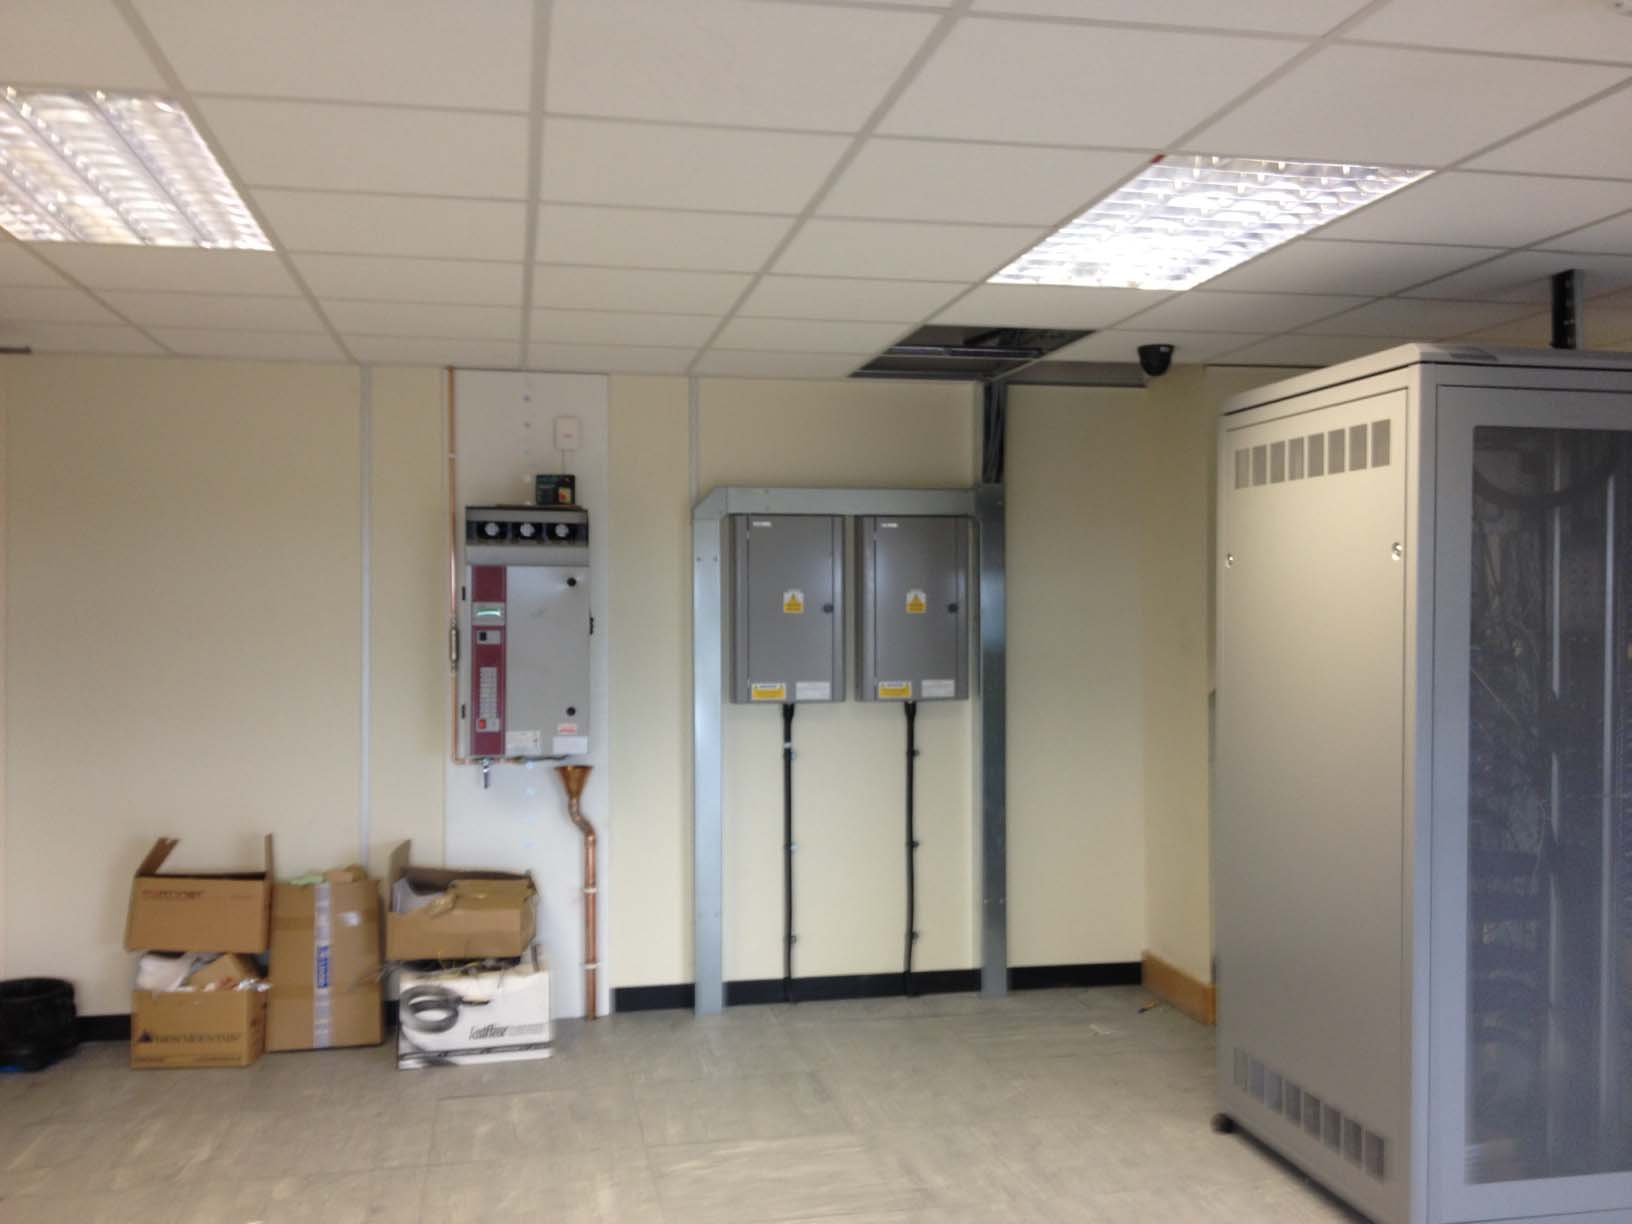 Server Room Air Conditioning : Server room air conditioning at saga healthcare plc